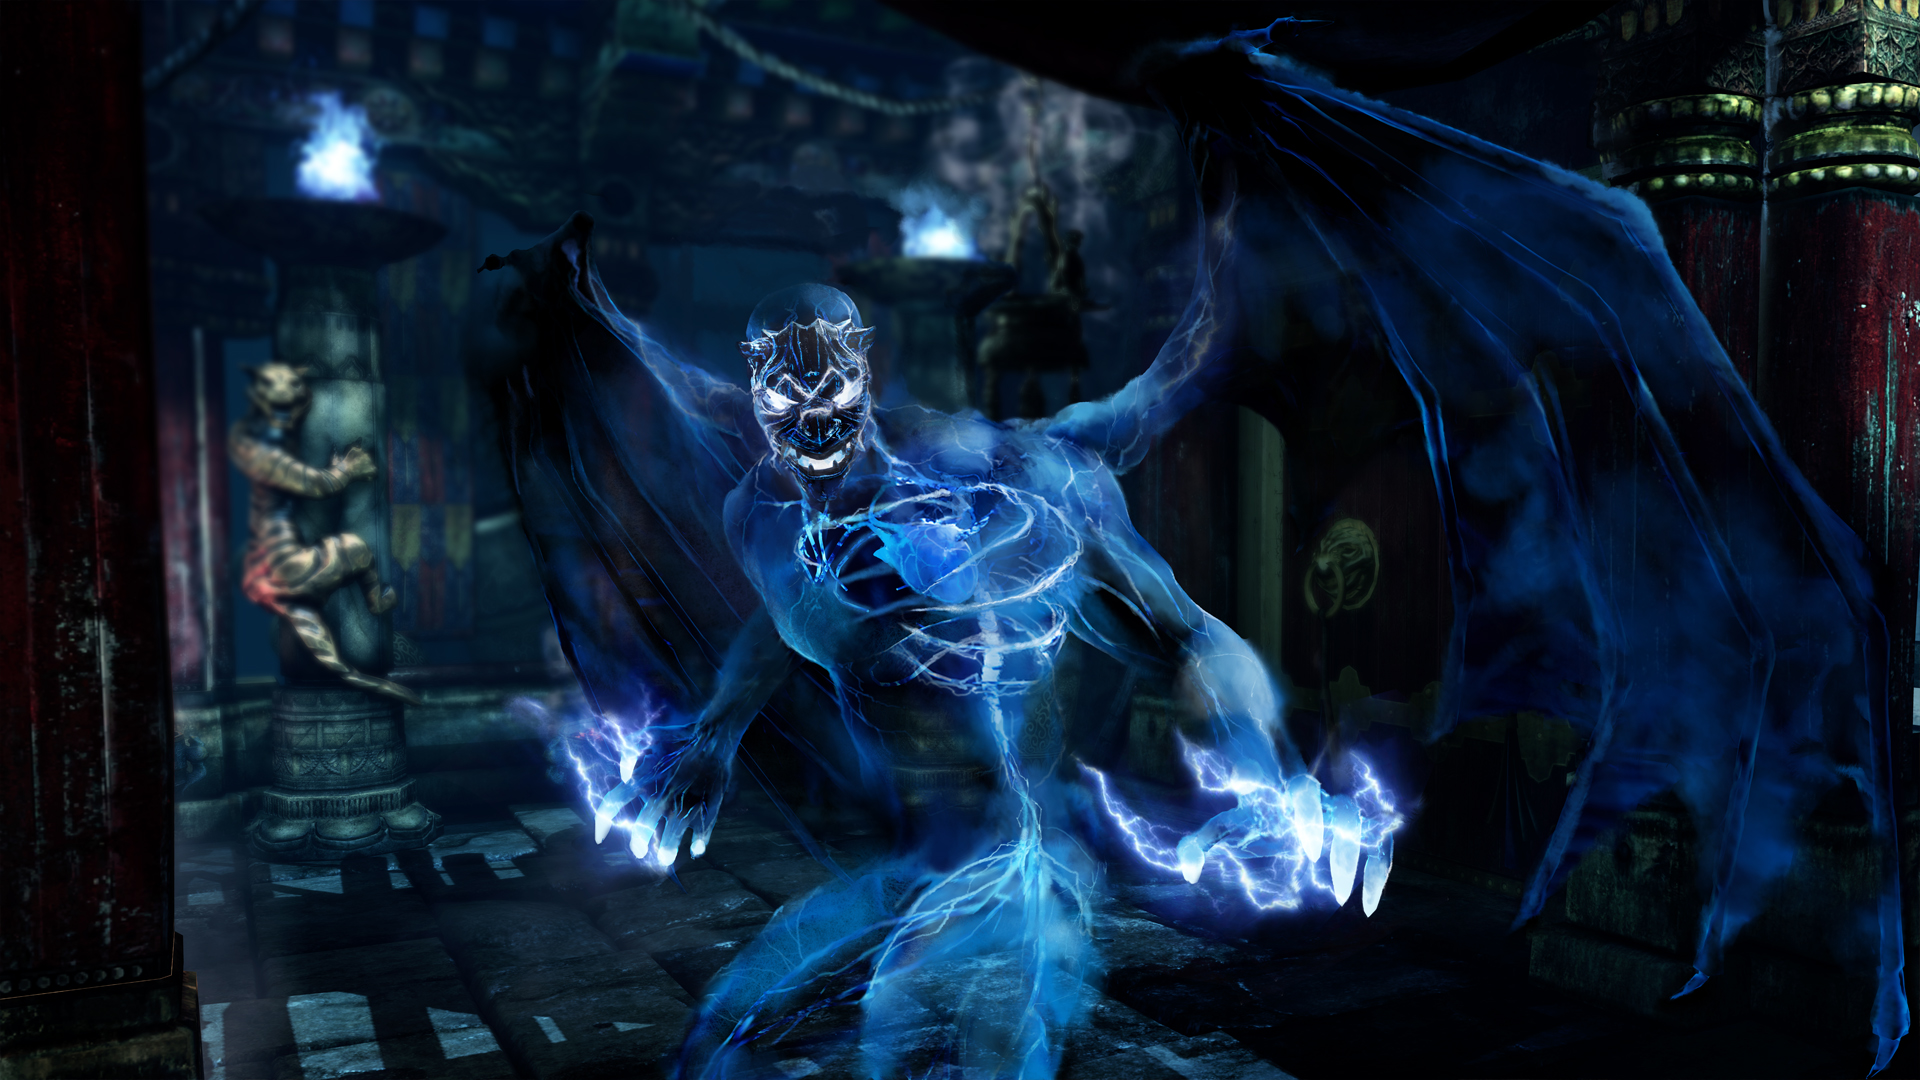 The herald of gargos killer instinct wiki fandom for Portent vs omen